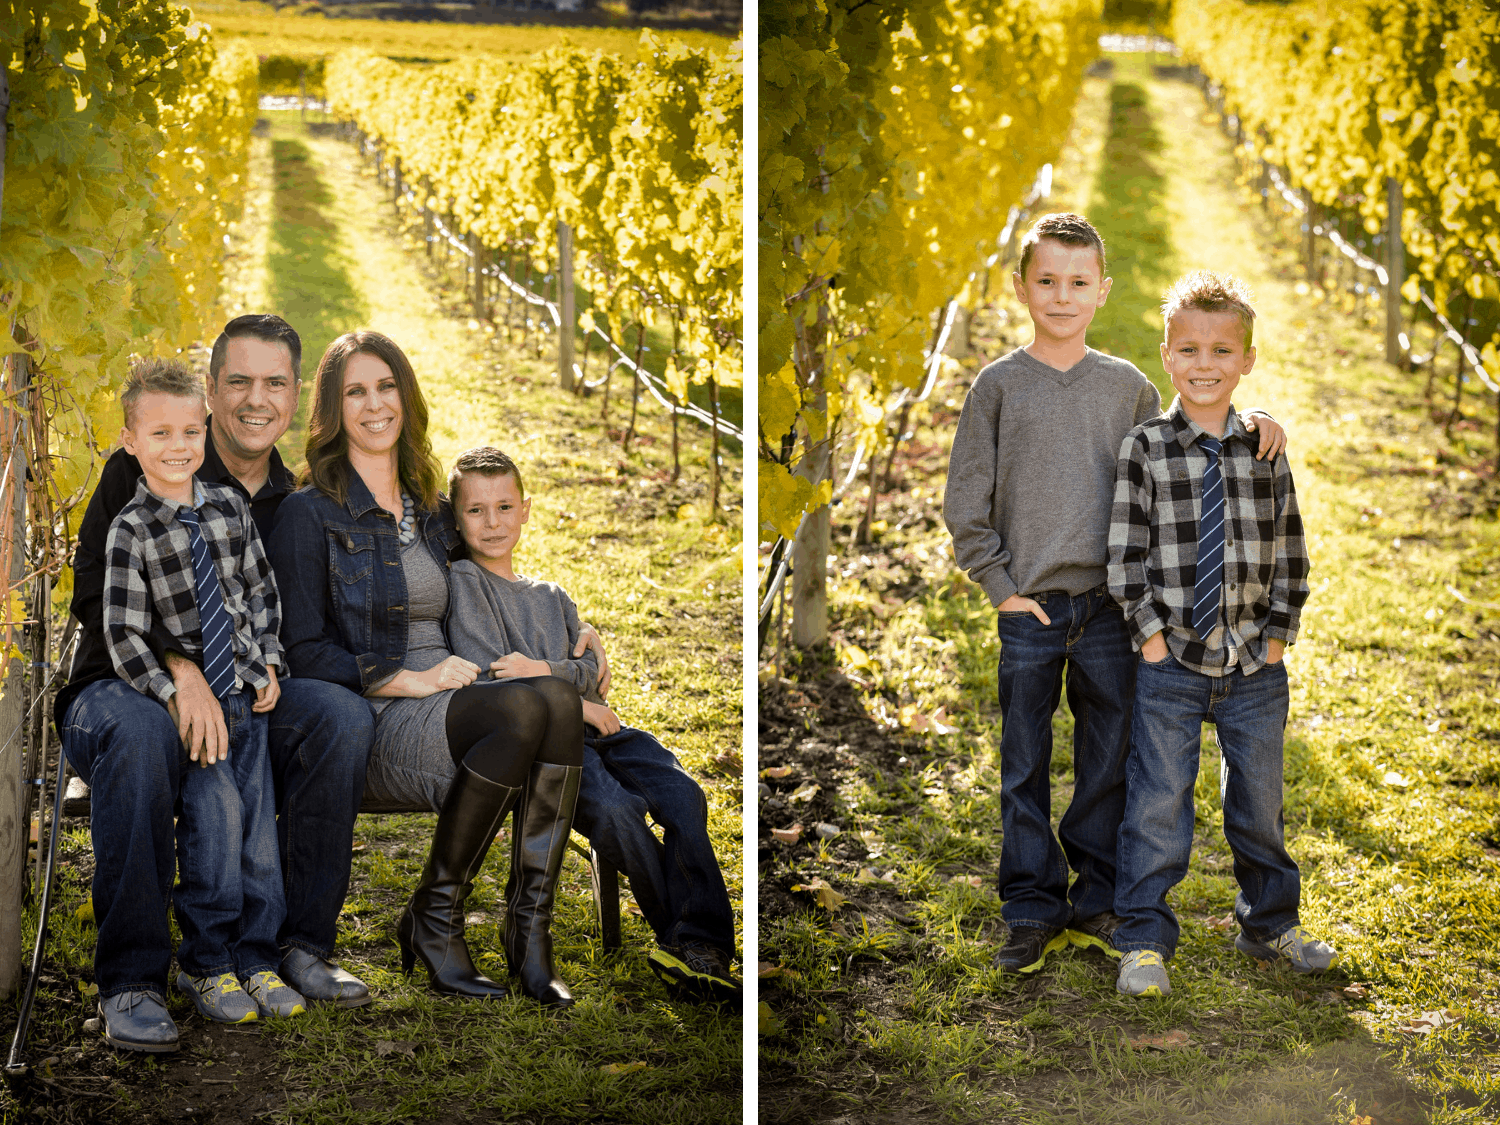 Family photos in a fall vineyard